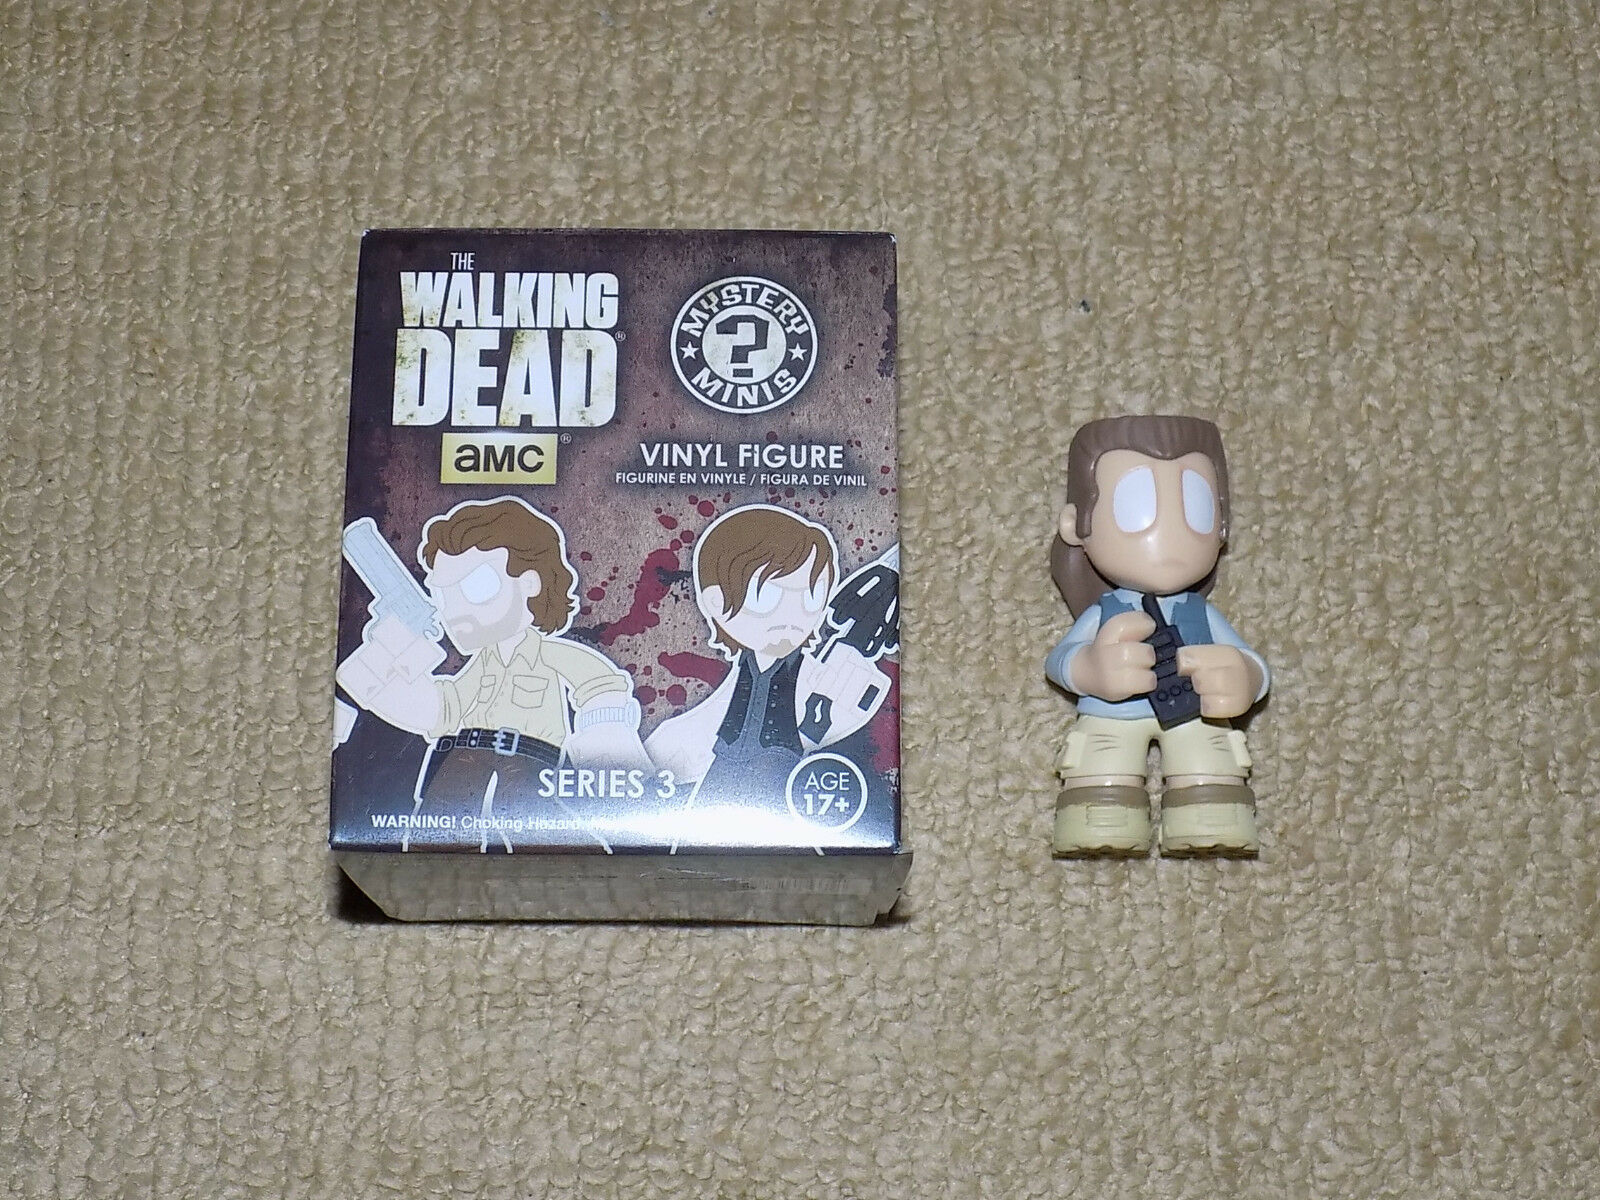 FUNKO, EUGENE PORTER MYSTERY MINIS HOT TOPIC EXCLUSIVE THE WALKING DEAD SERIES 3